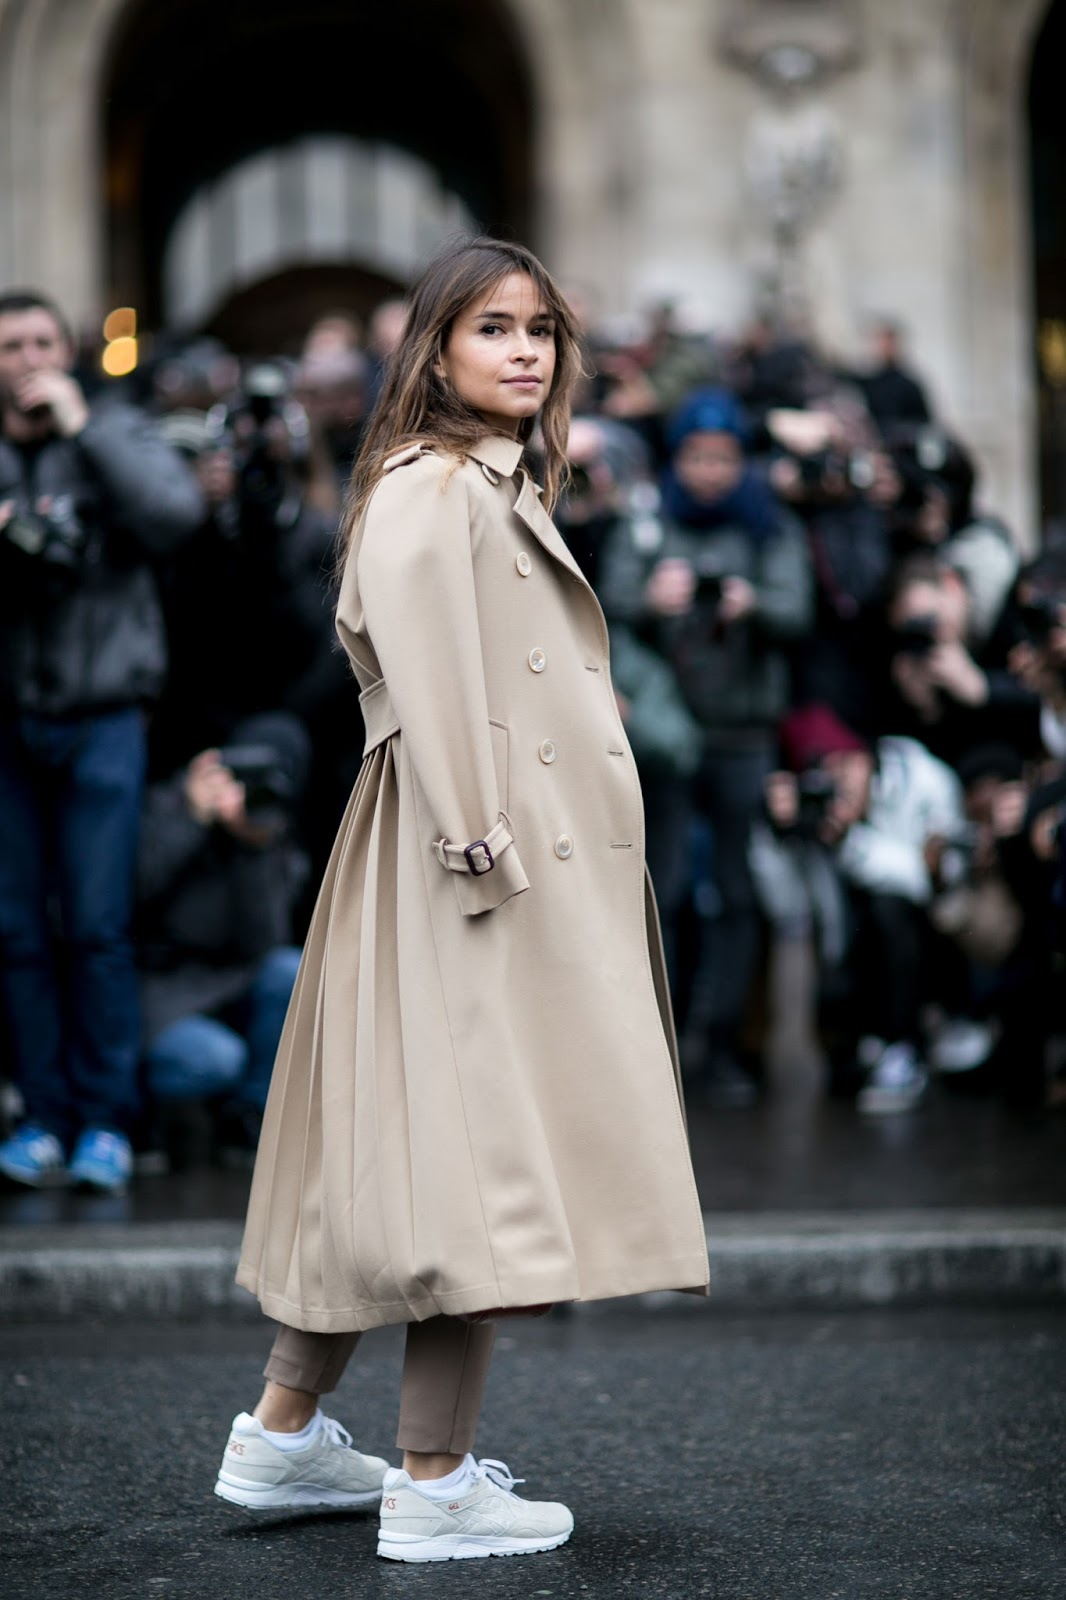 Miroslava Duma's Fashion Week Autumn/Winter 2016 Style